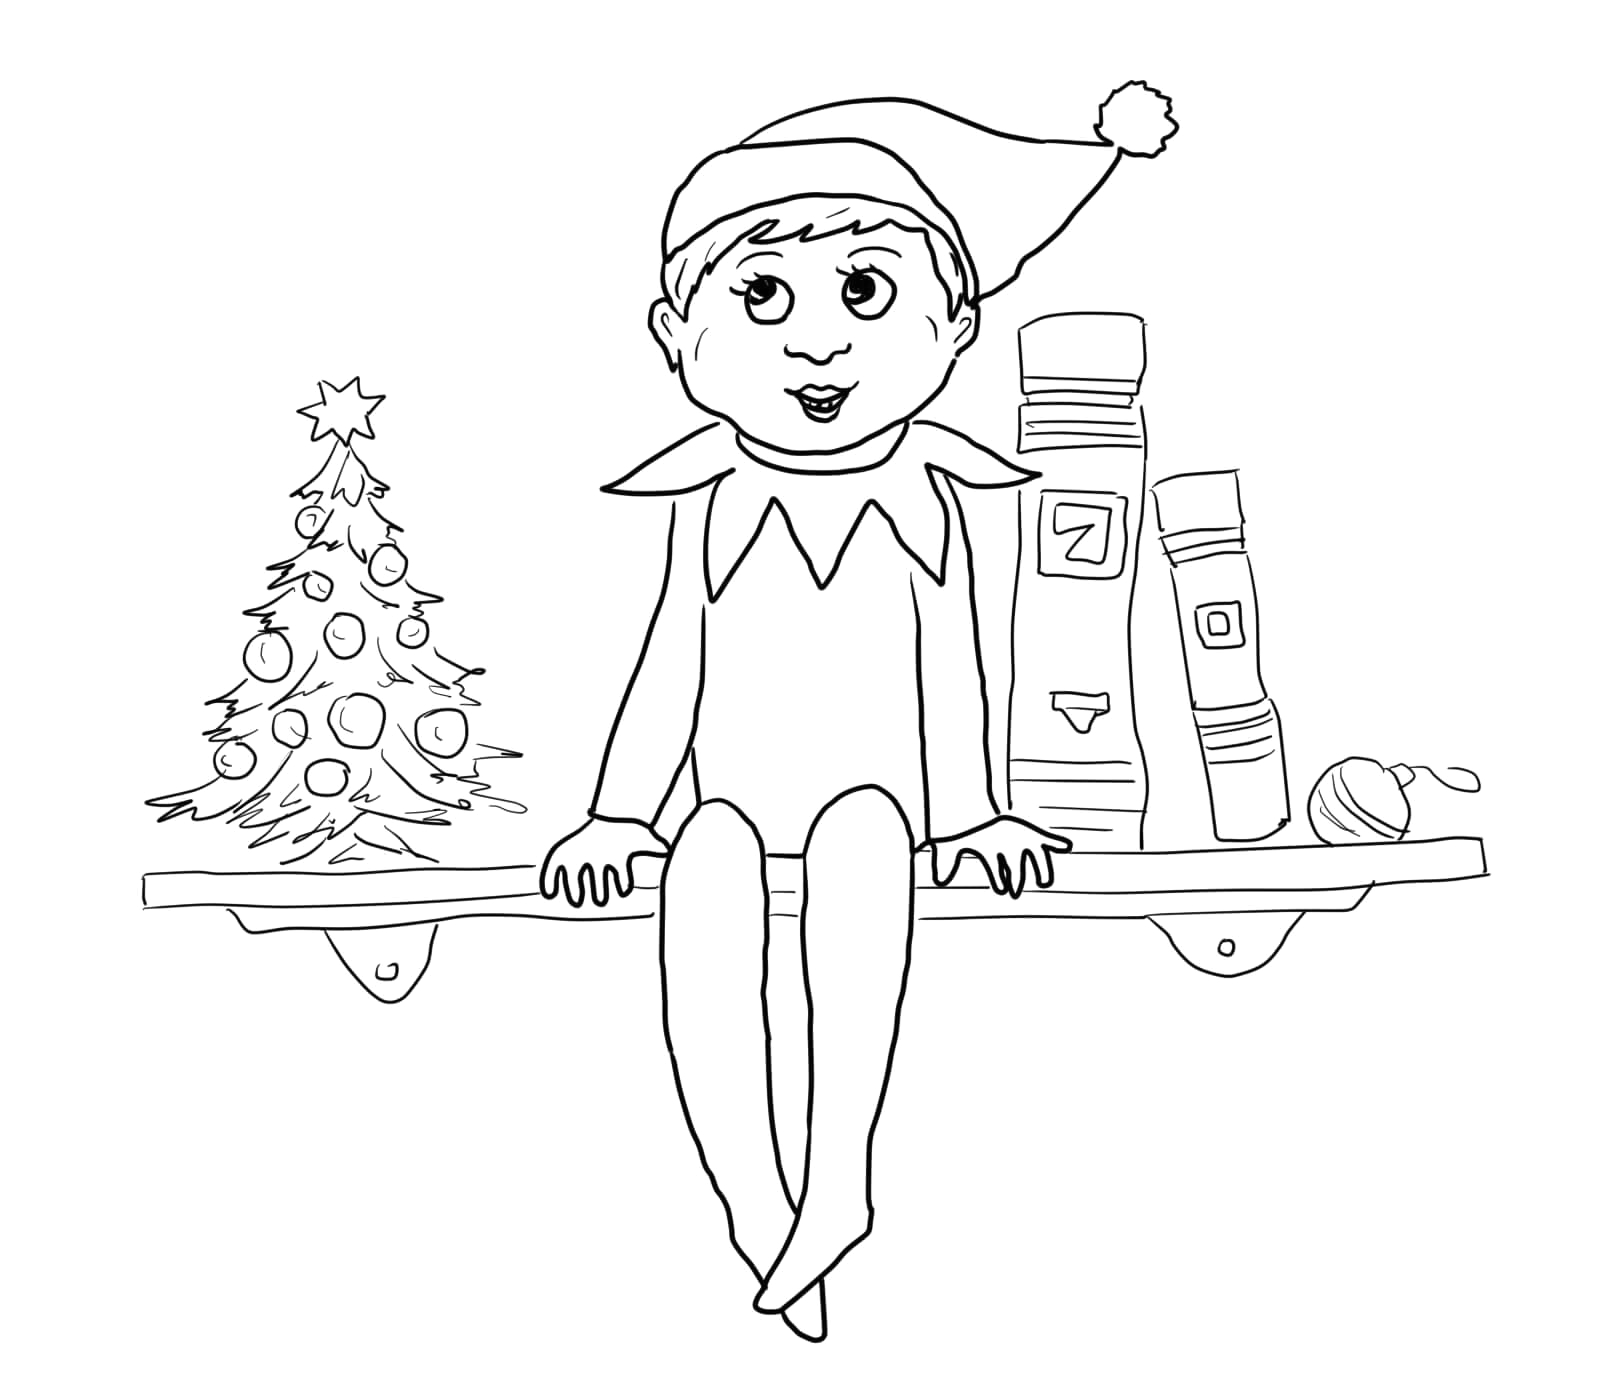 Free Printable Elf On the Shelf Coloring Pages Elf On the Shelf Printable Coloring Pages Free